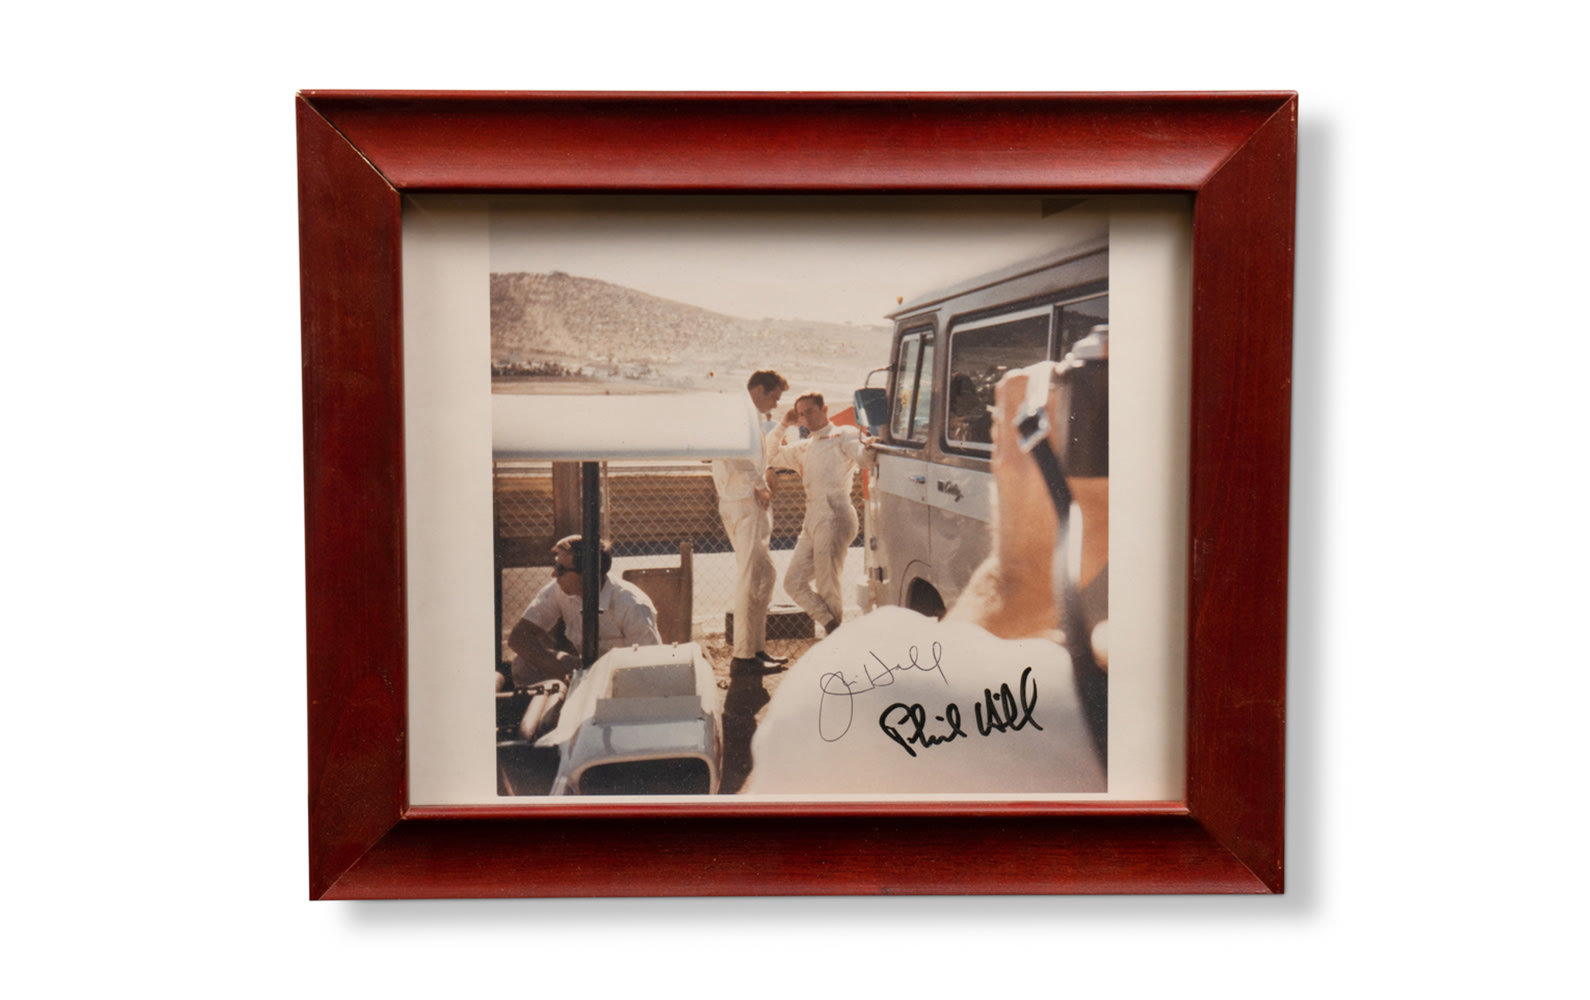 Signed Photograph of Phil Hill and Jim Hall at Laguna Seca, 1966